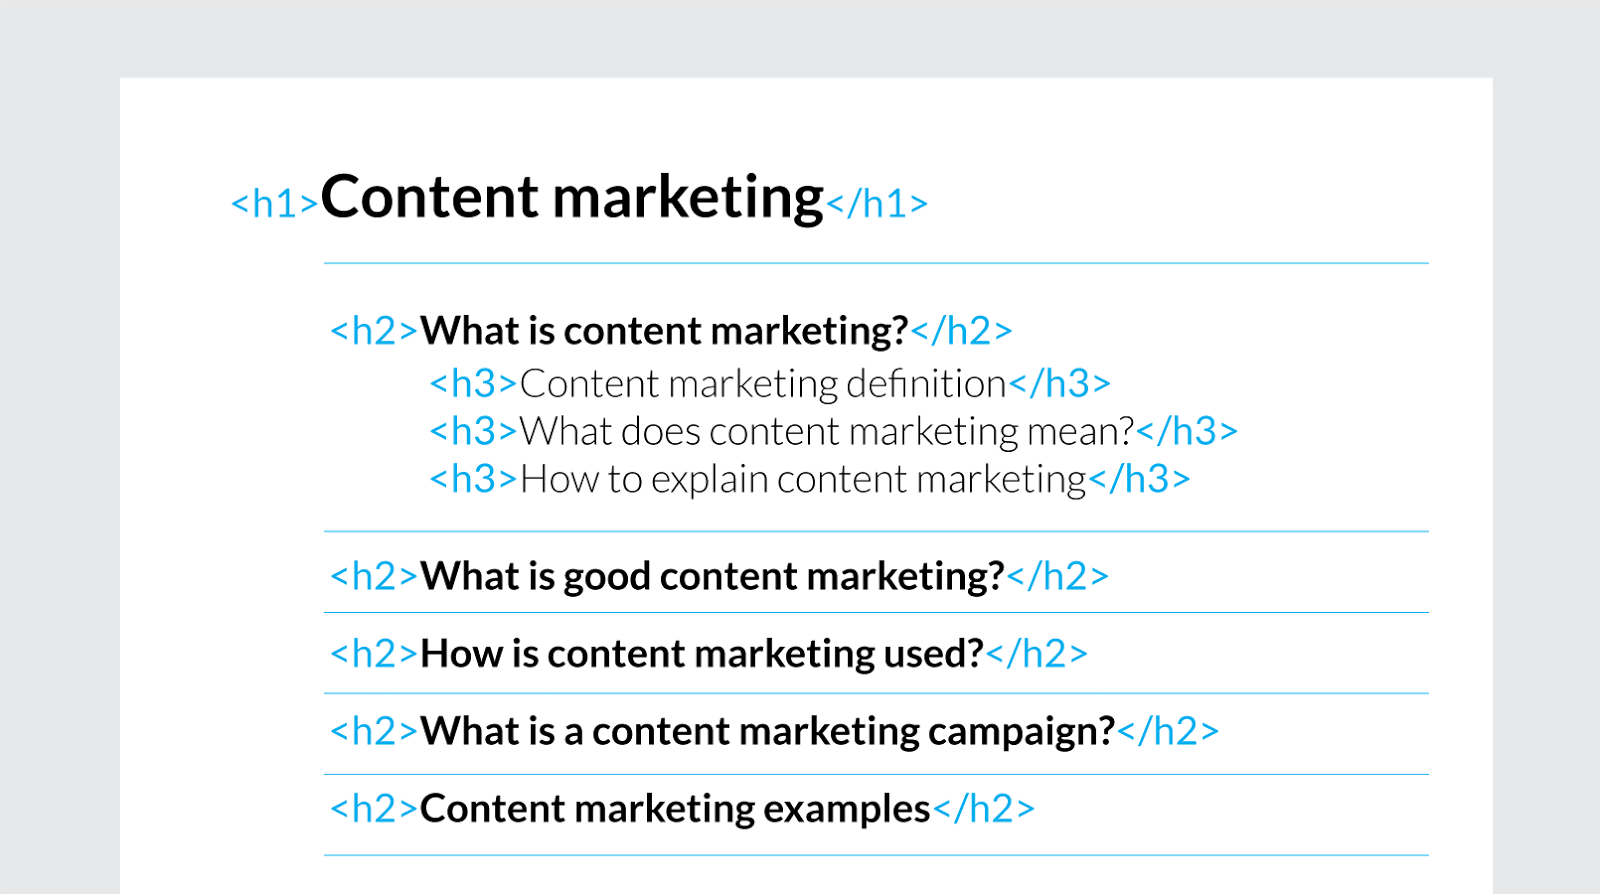 Example of headings and keywords in SEO copywriting